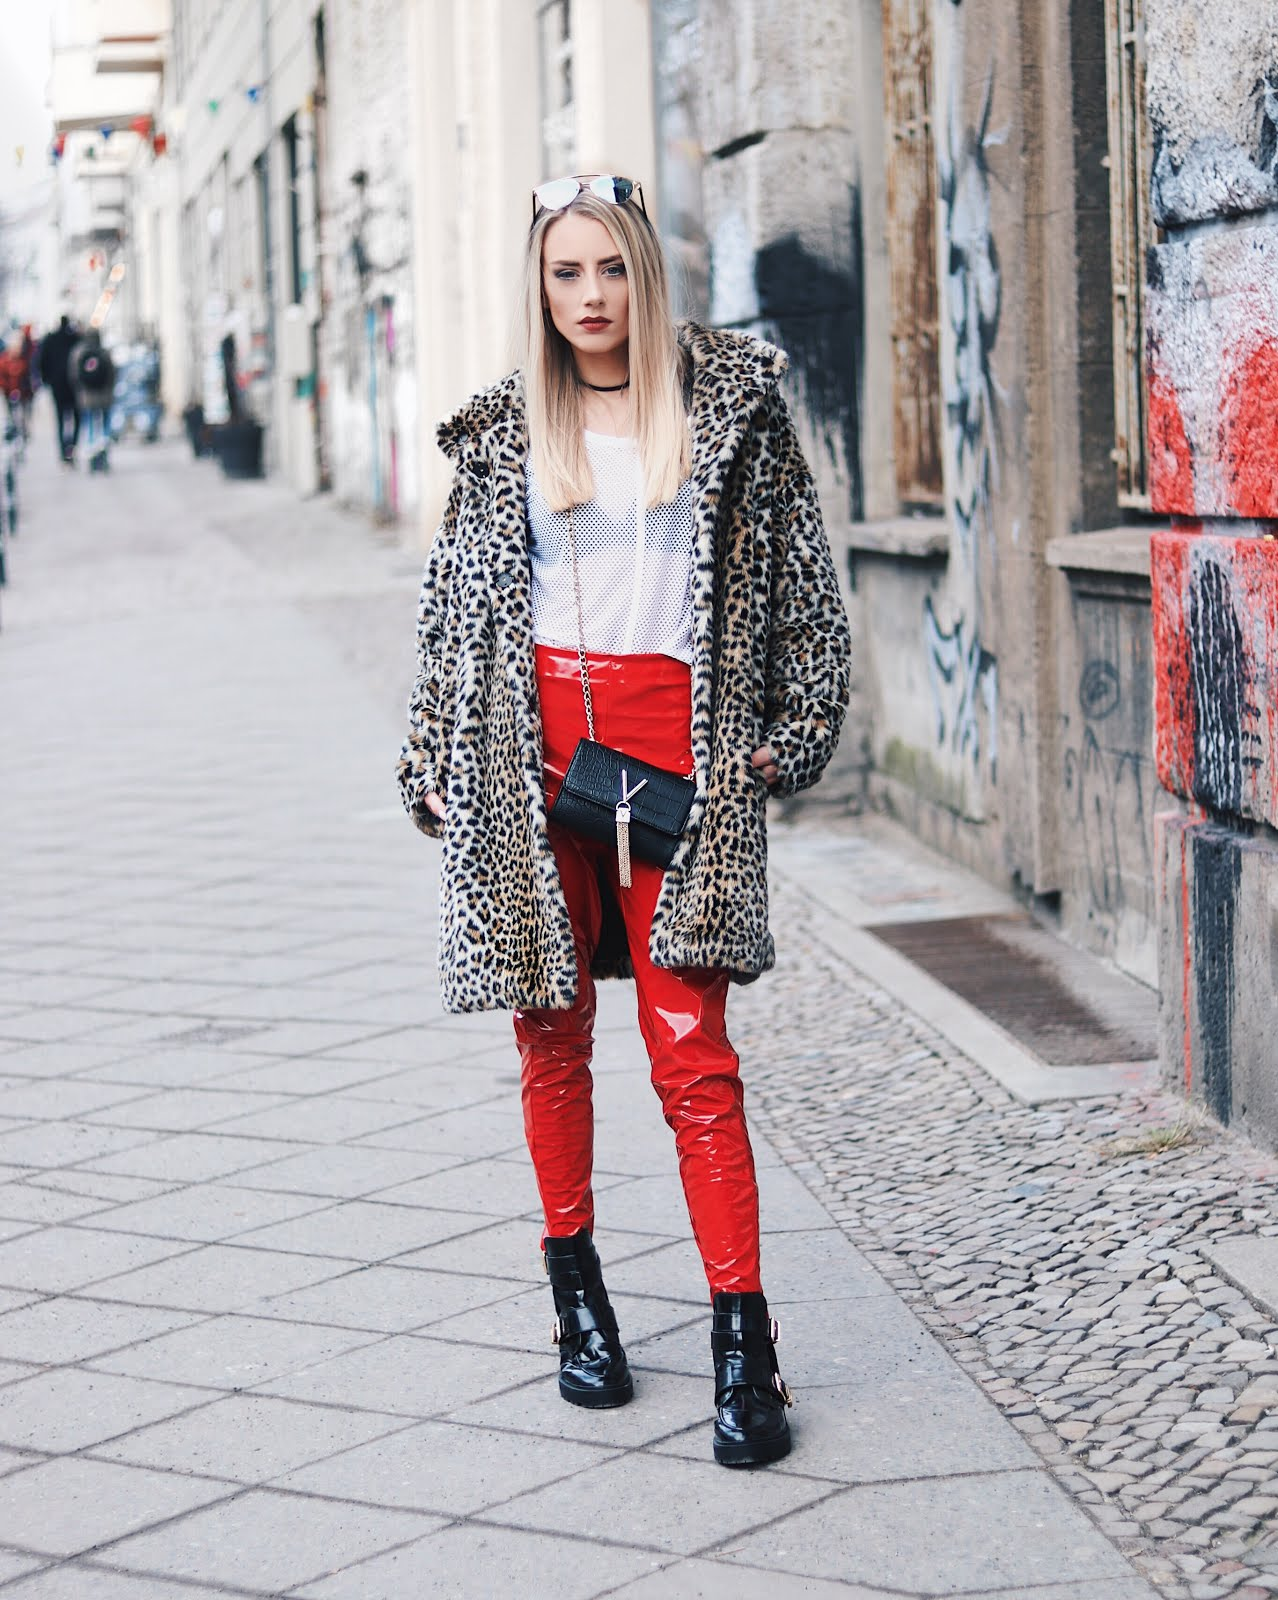 Streetstyle Outfit Fashion Week Berlin 2017